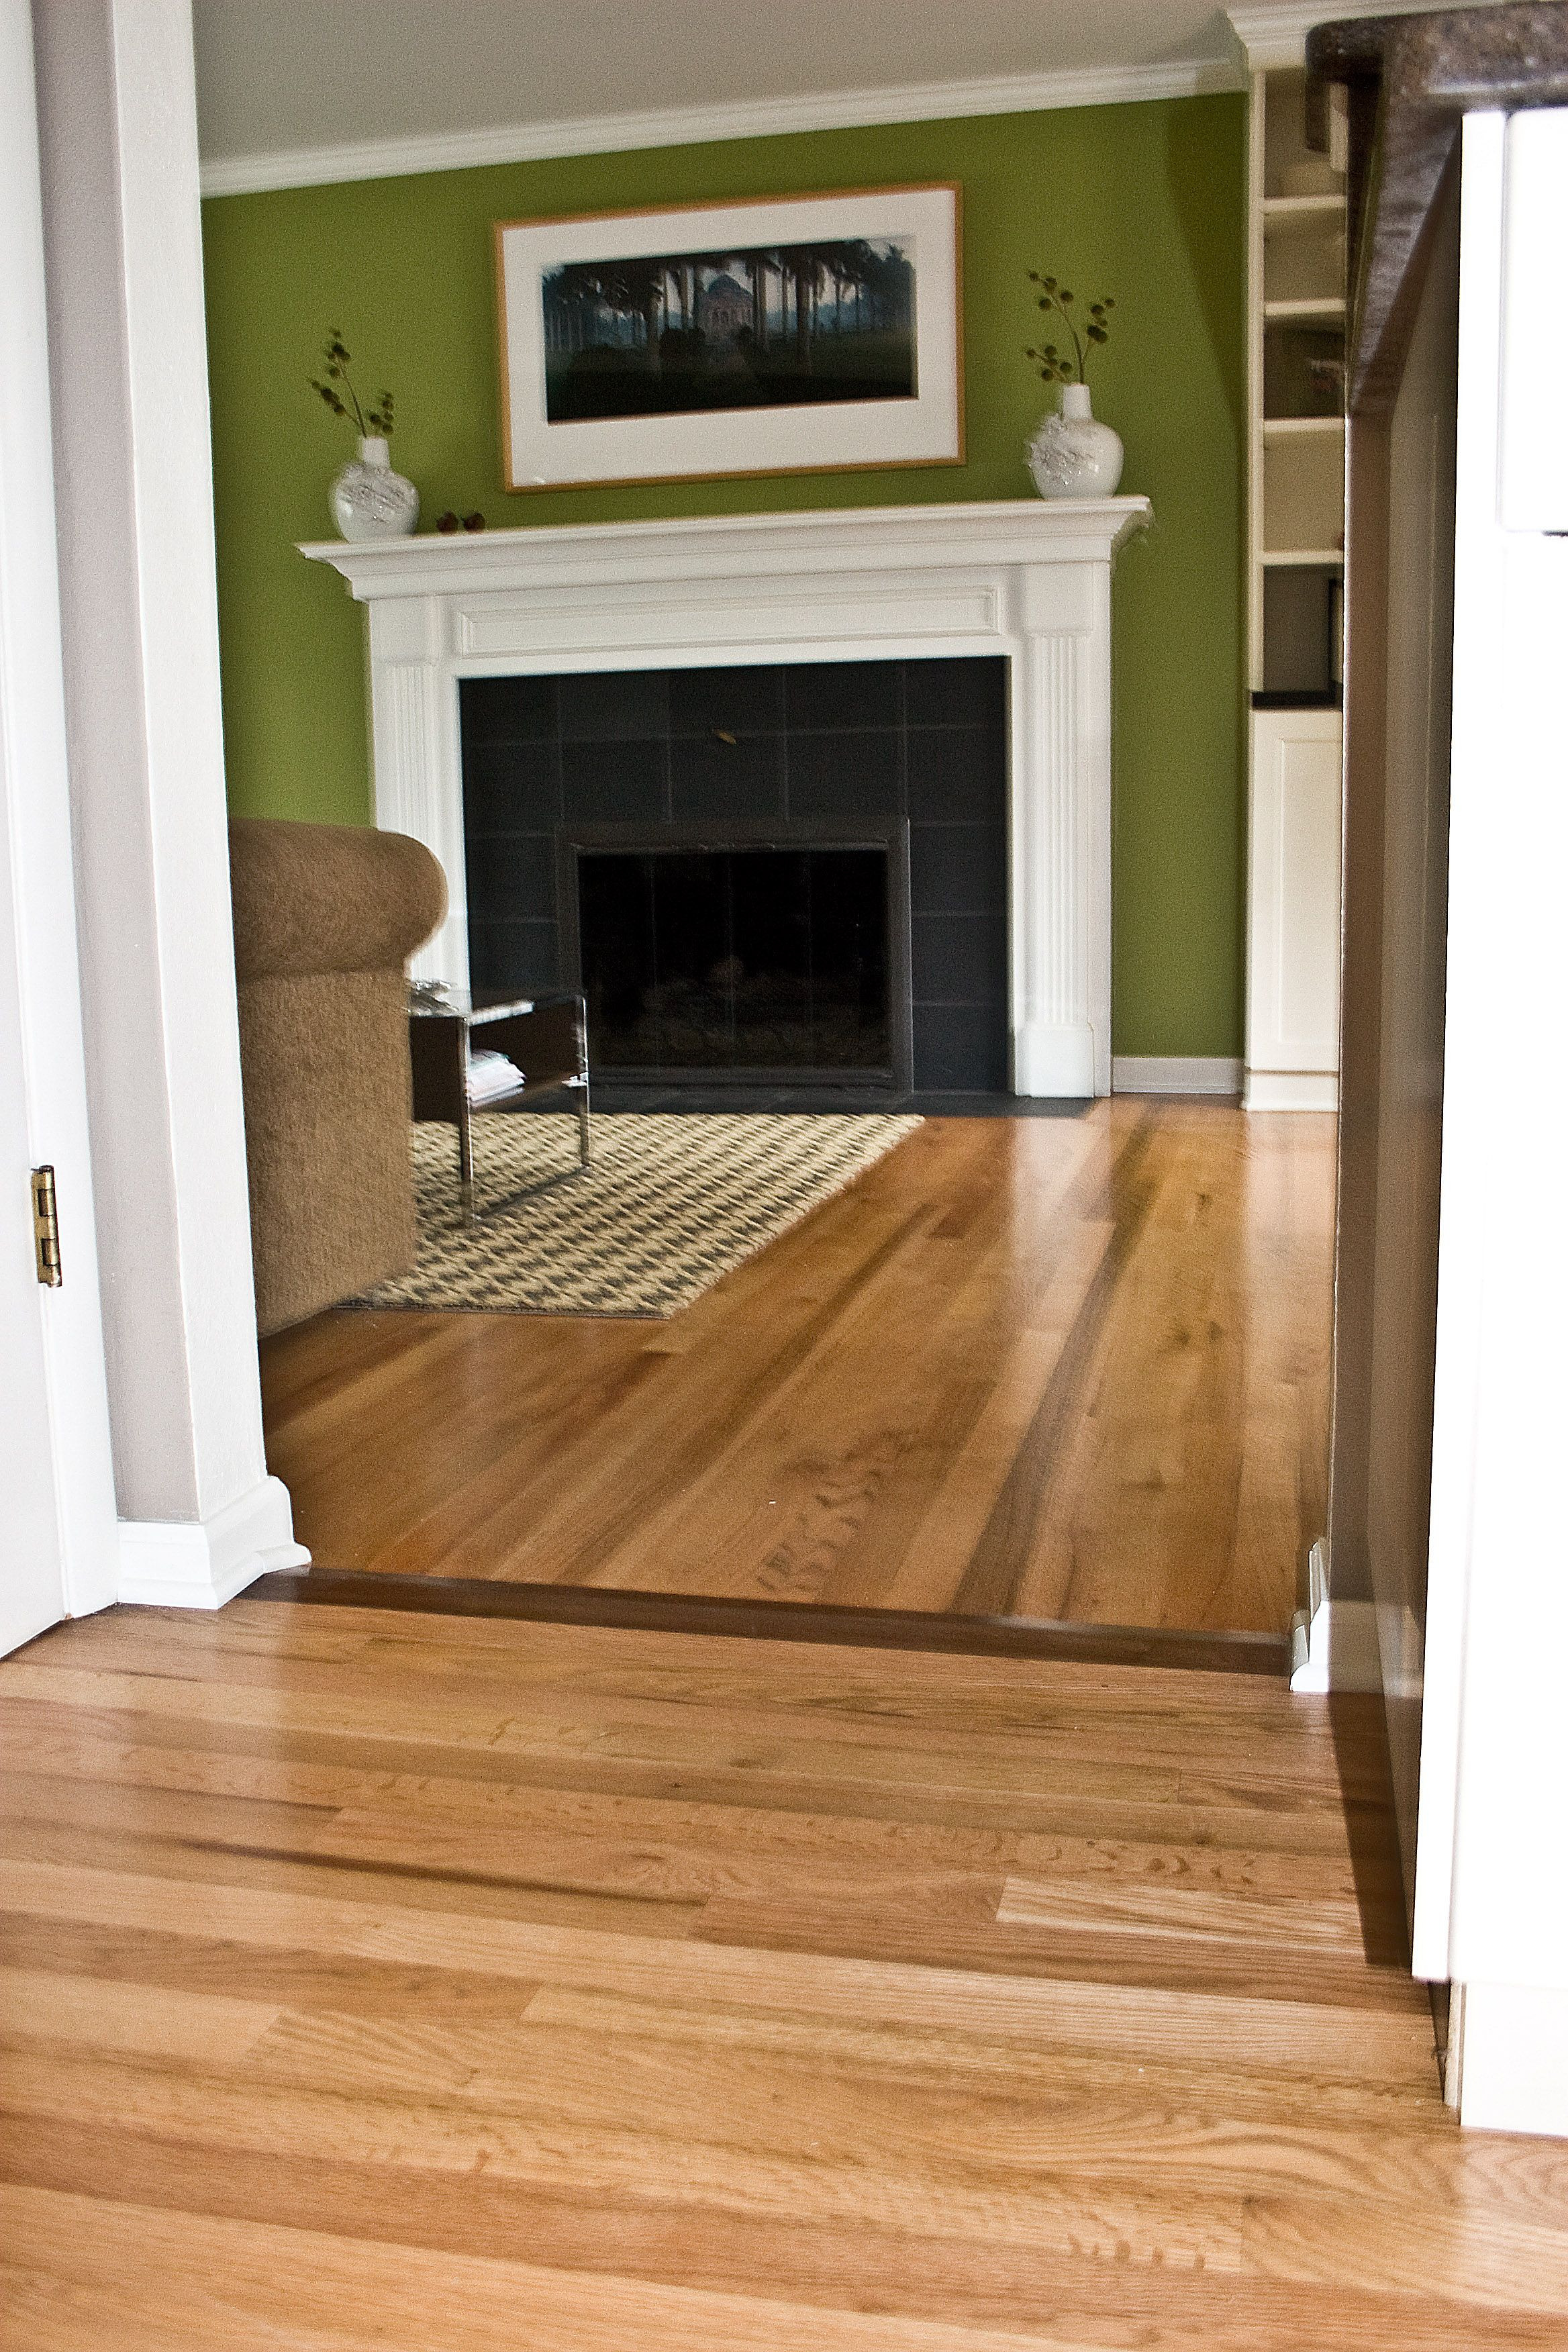 hardwood floor paper of paper floors floor within paper floors good idea for adding hard to match hardwoods